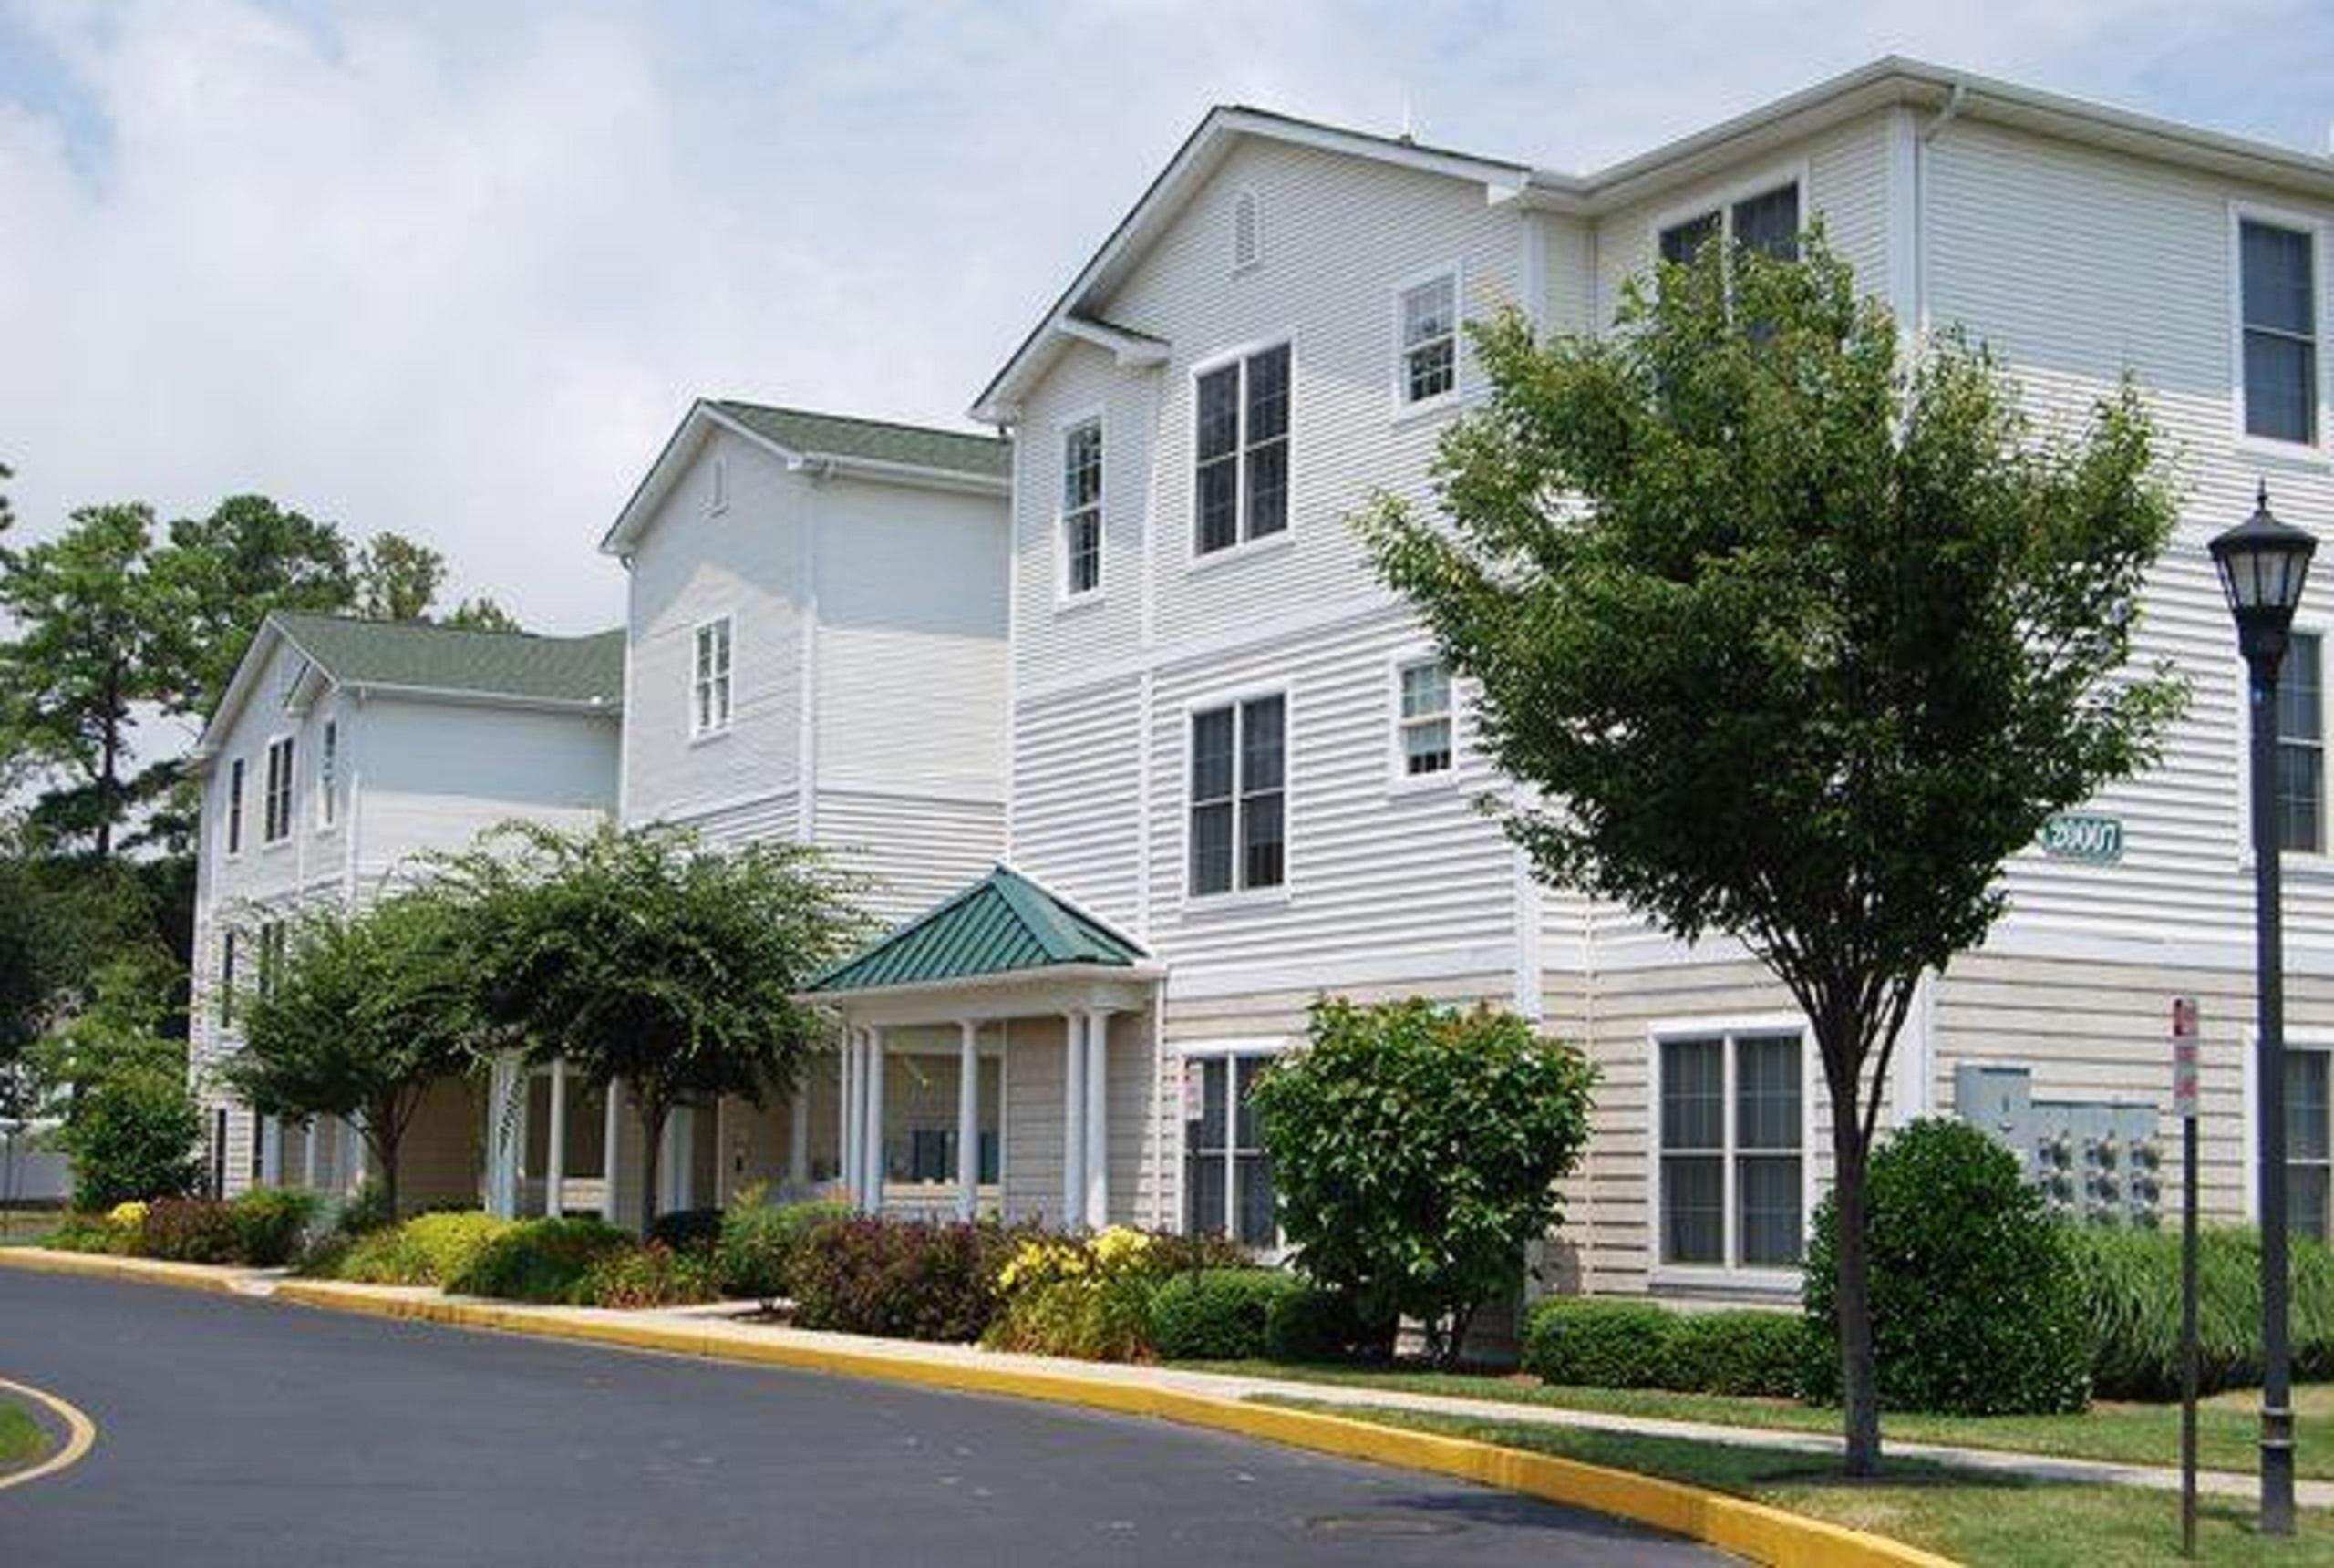 Rehoboth House Rentals Oceanfront - 100 Rehoboth House ...